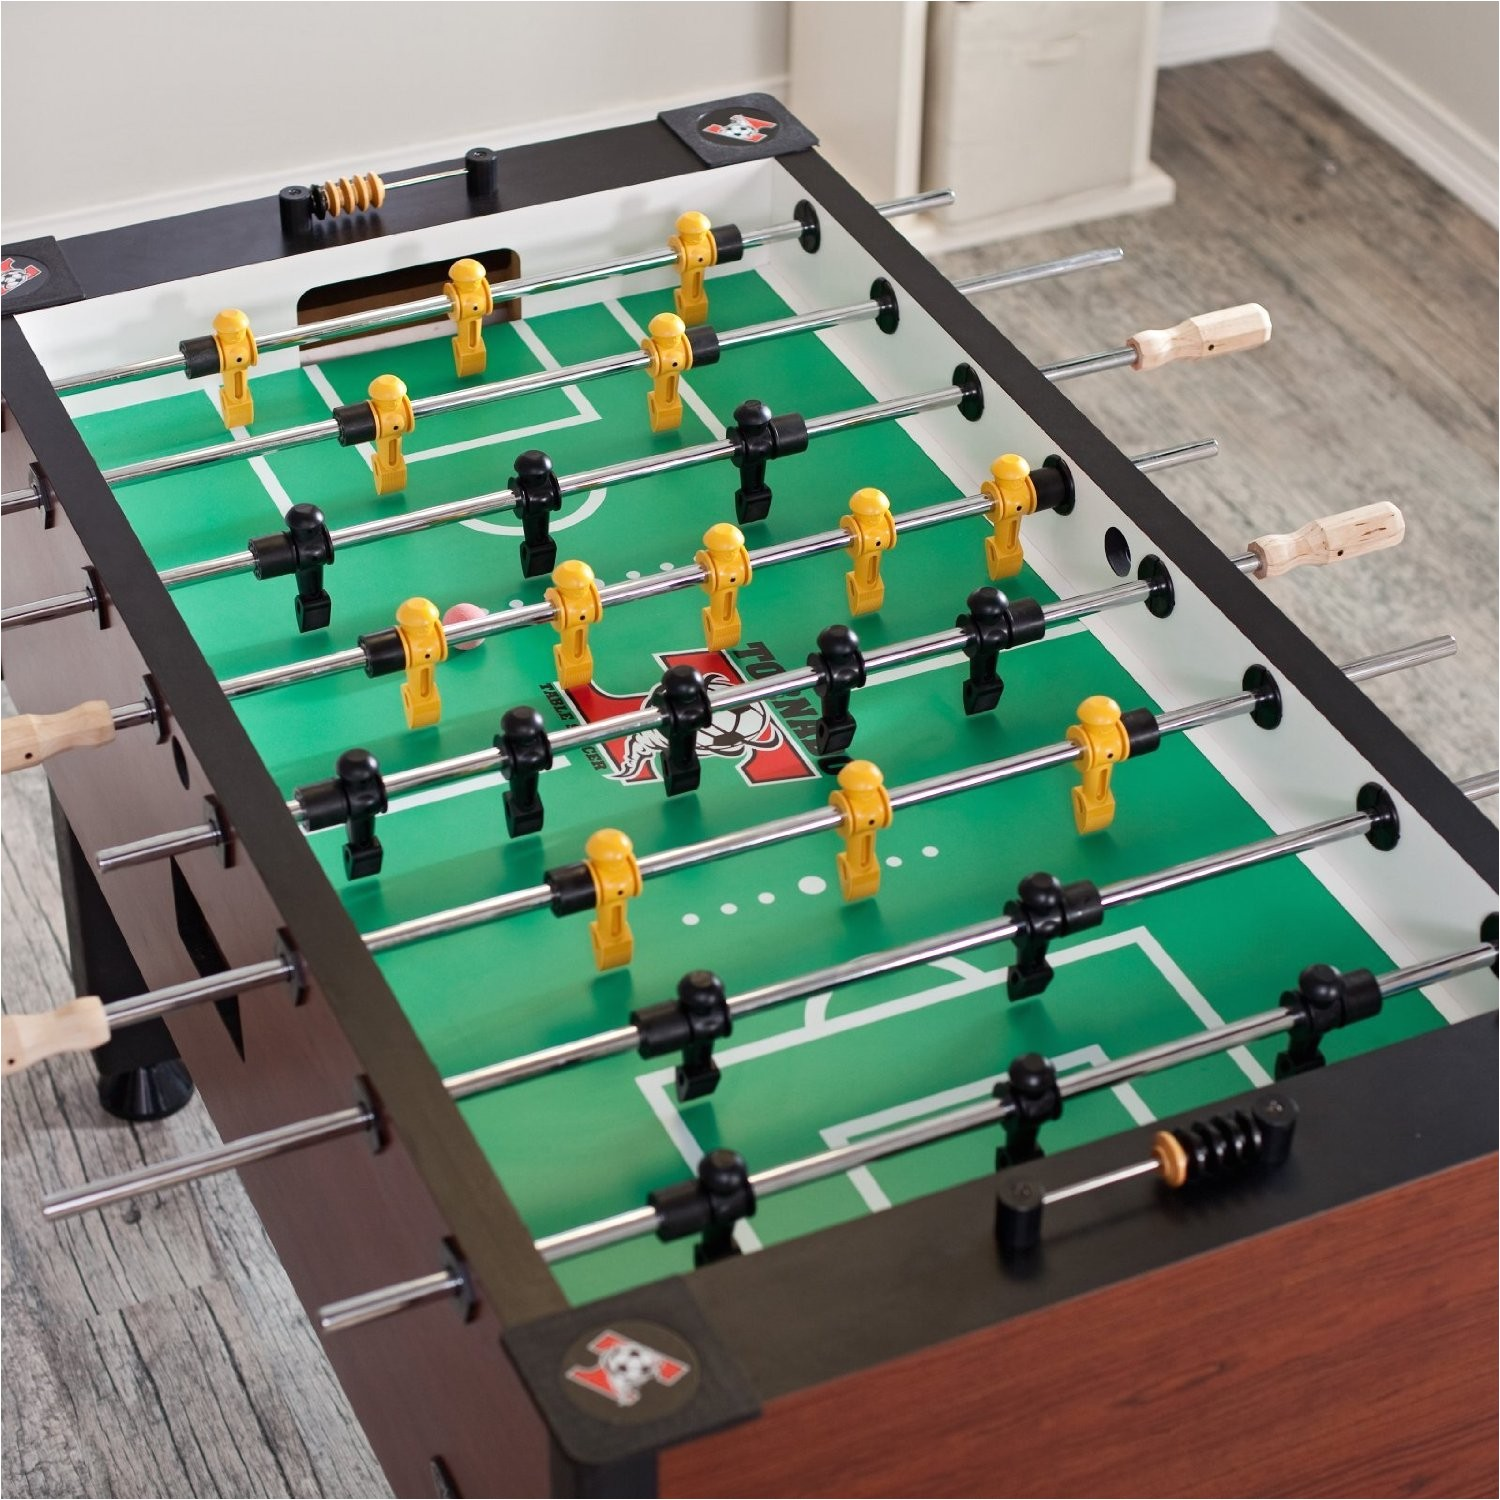 Tornado Elite Foosball Table Specs tornado Elite Foosball Table Complete Review